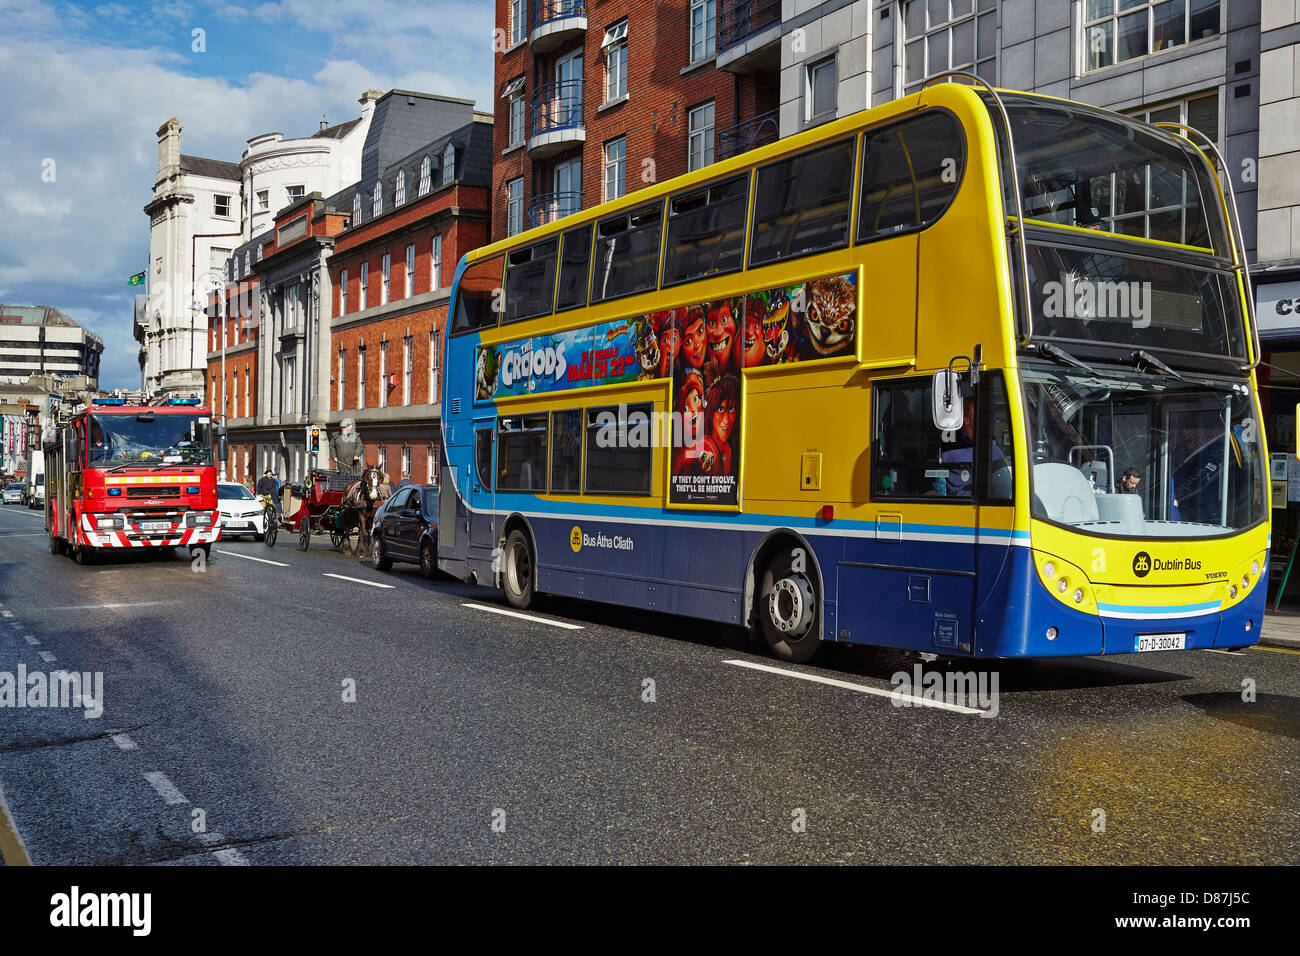 City bus, fire engine  and horse and carriage in a Dublin Street - Stock Image